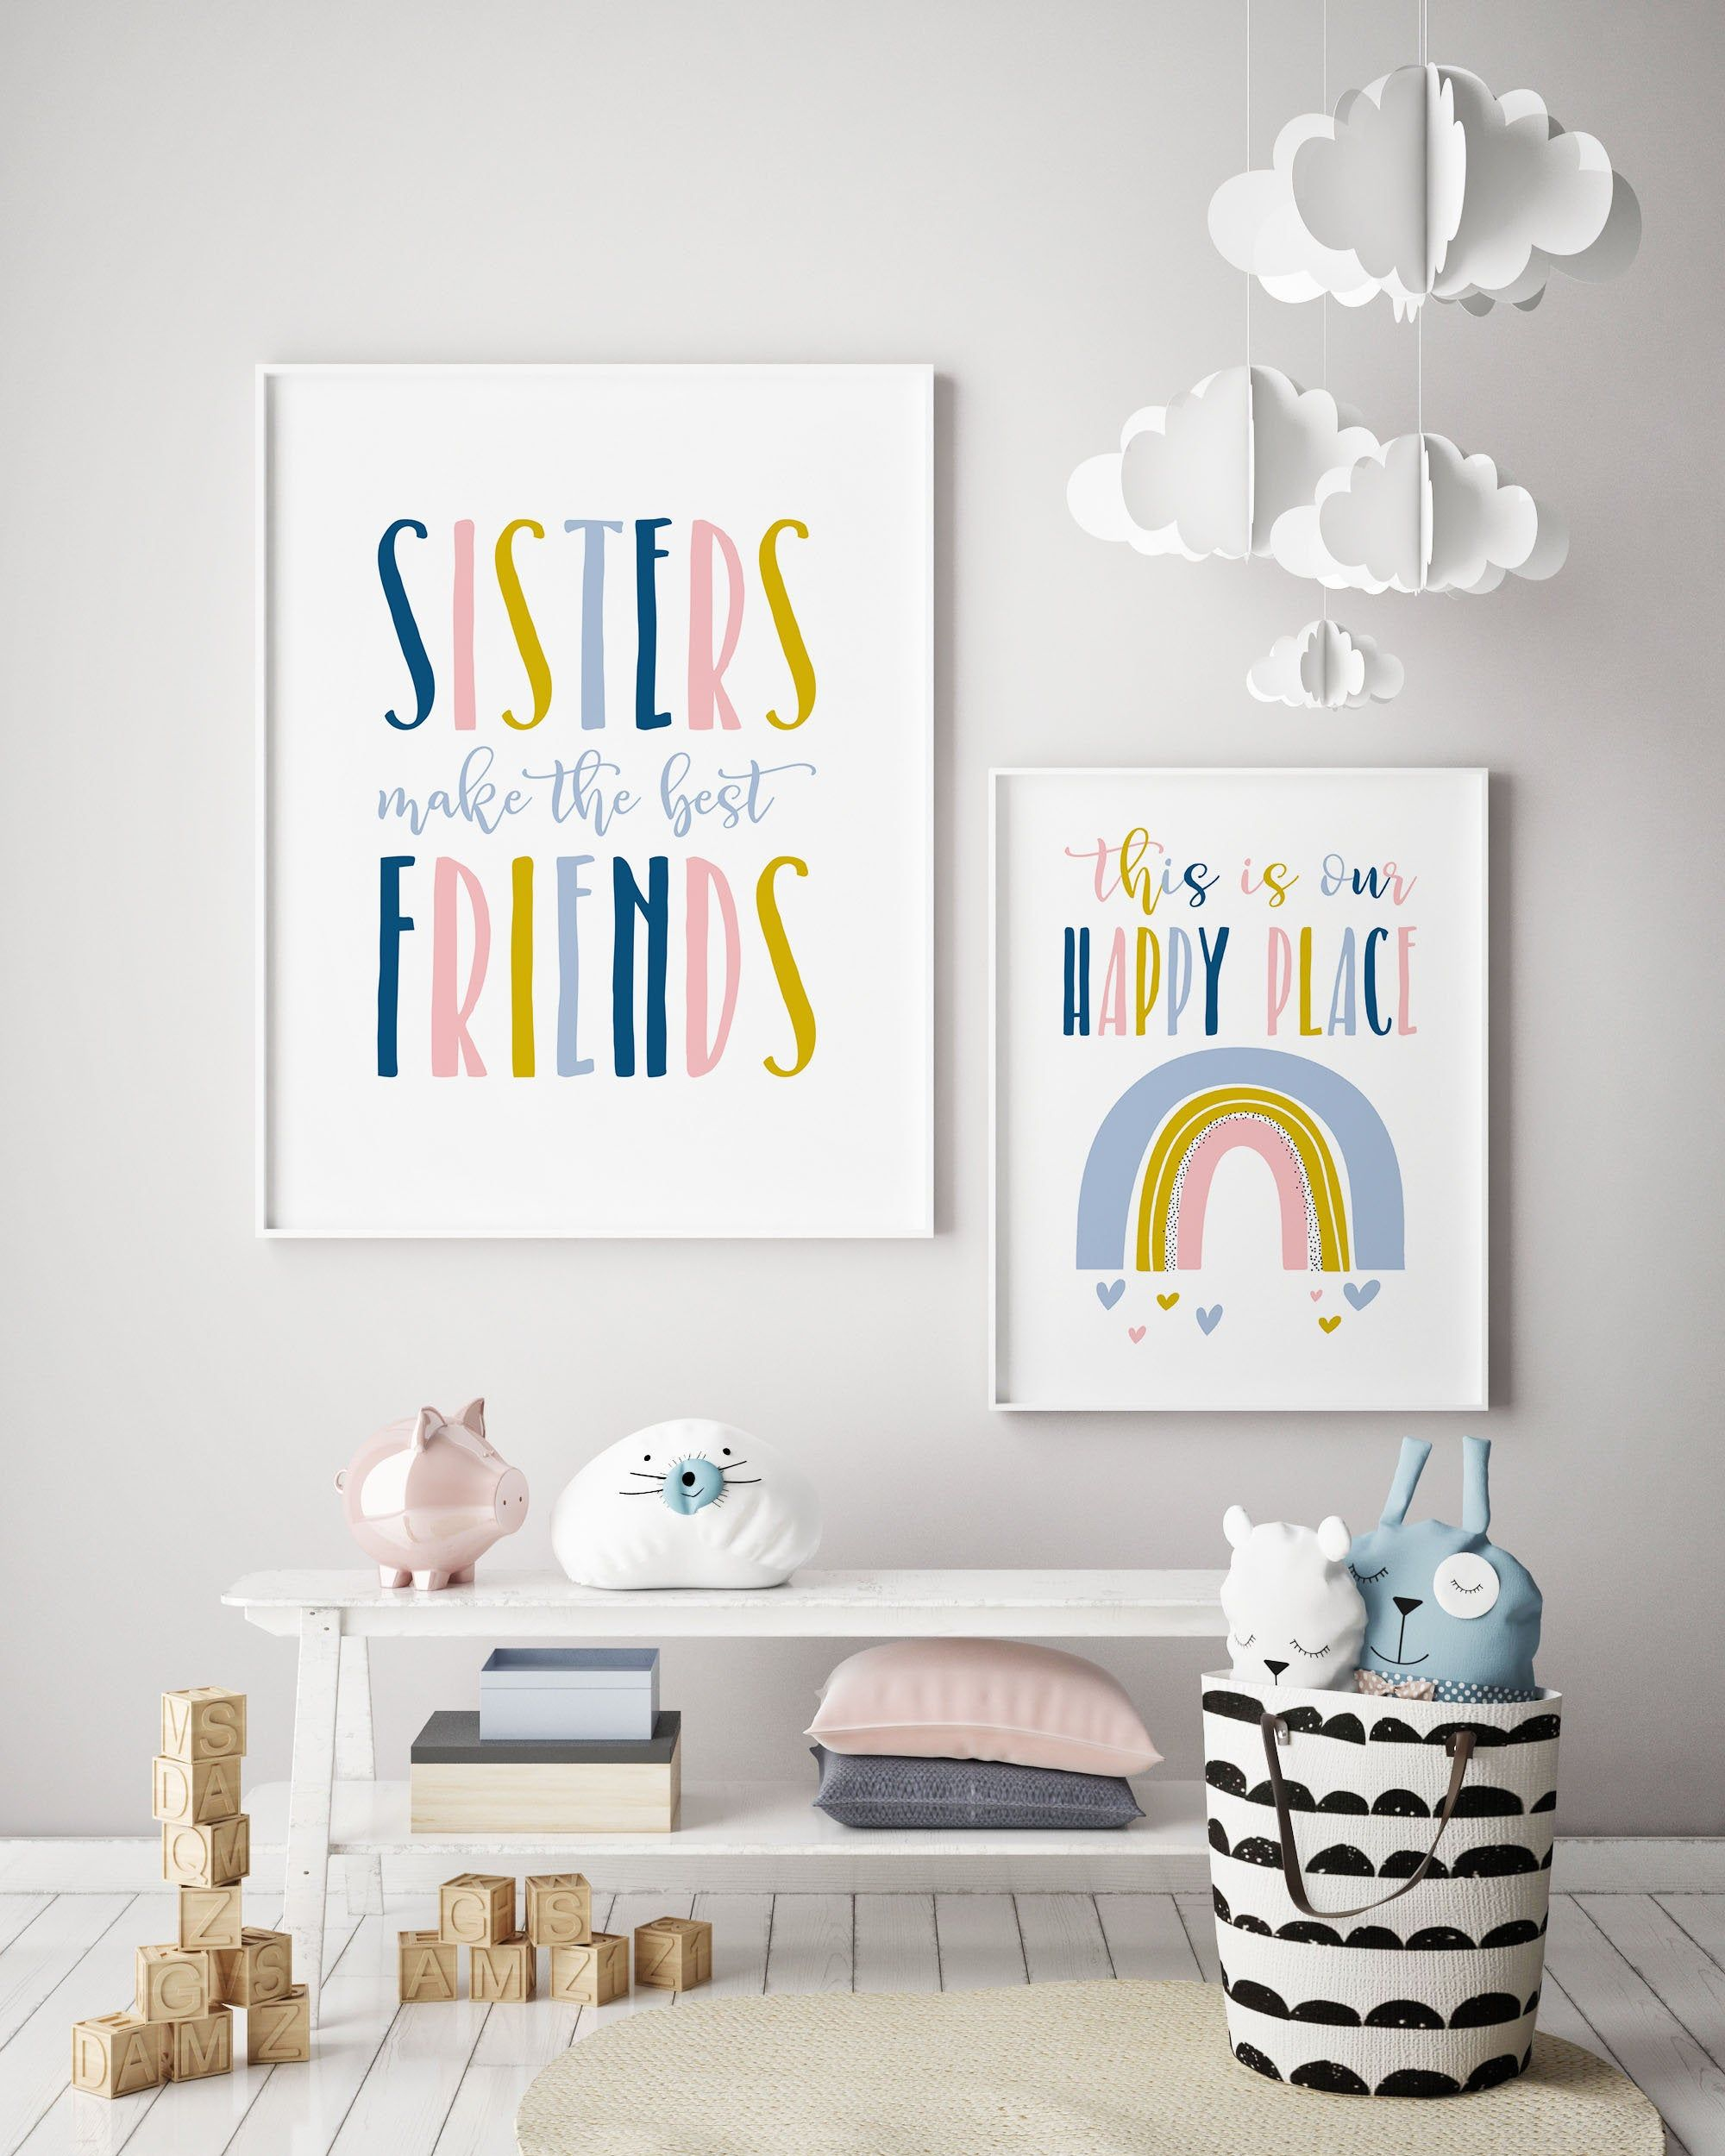 Set Of 2 Prints Download Girls Room Decor Sisters Wall Art Sisters Wall Quote Playroom Printables Kids Room Decor Rainbow Printables Shared Girls Room Girls Room Wall Decor Kids Room Wall